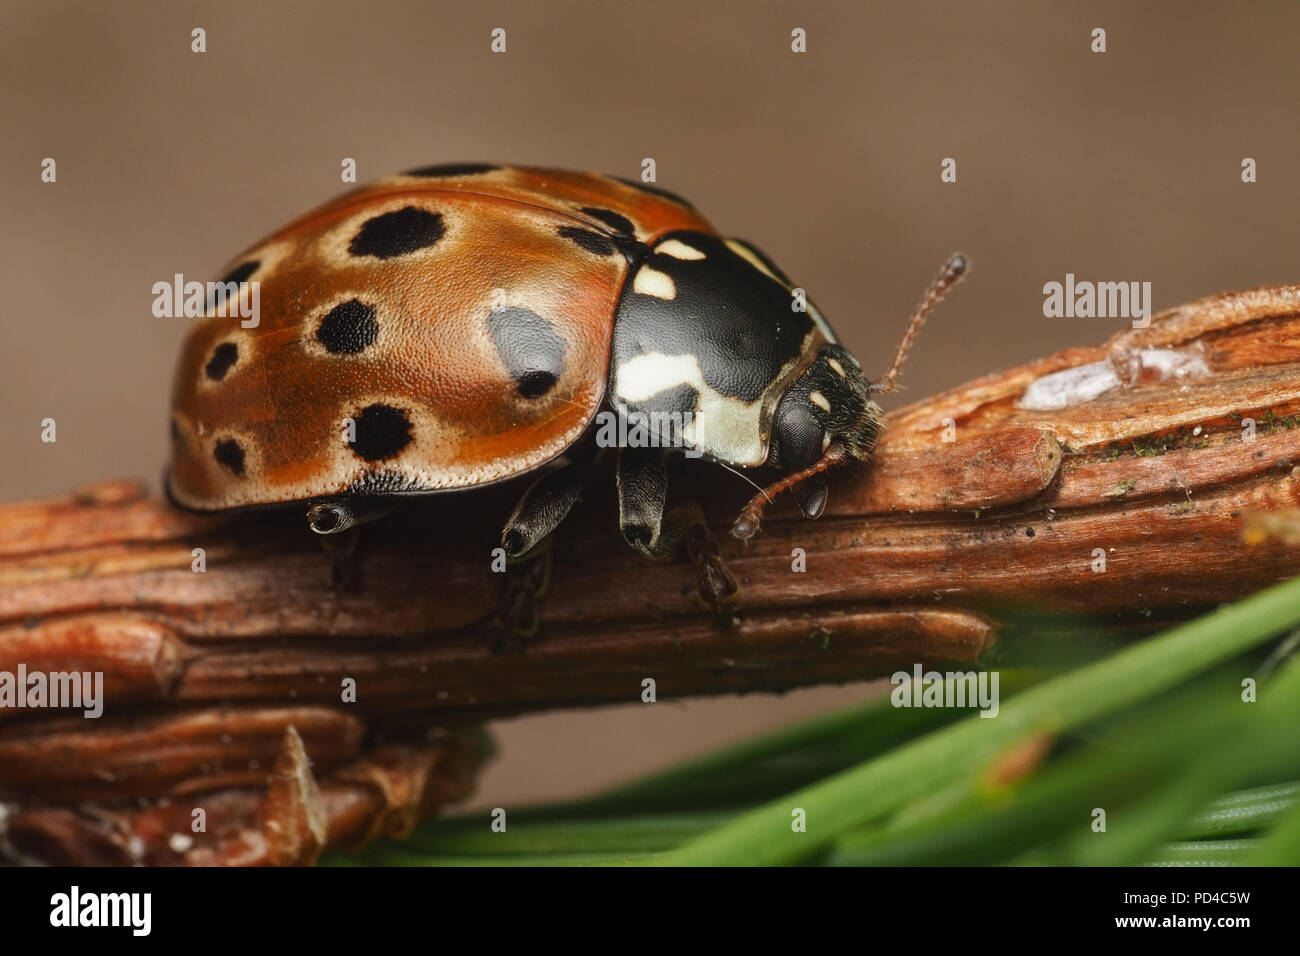 eyed-ladybird-anatis-ocellata-resting-on-conifer-branch-tipperary-ireland-PD4C5W.jpg